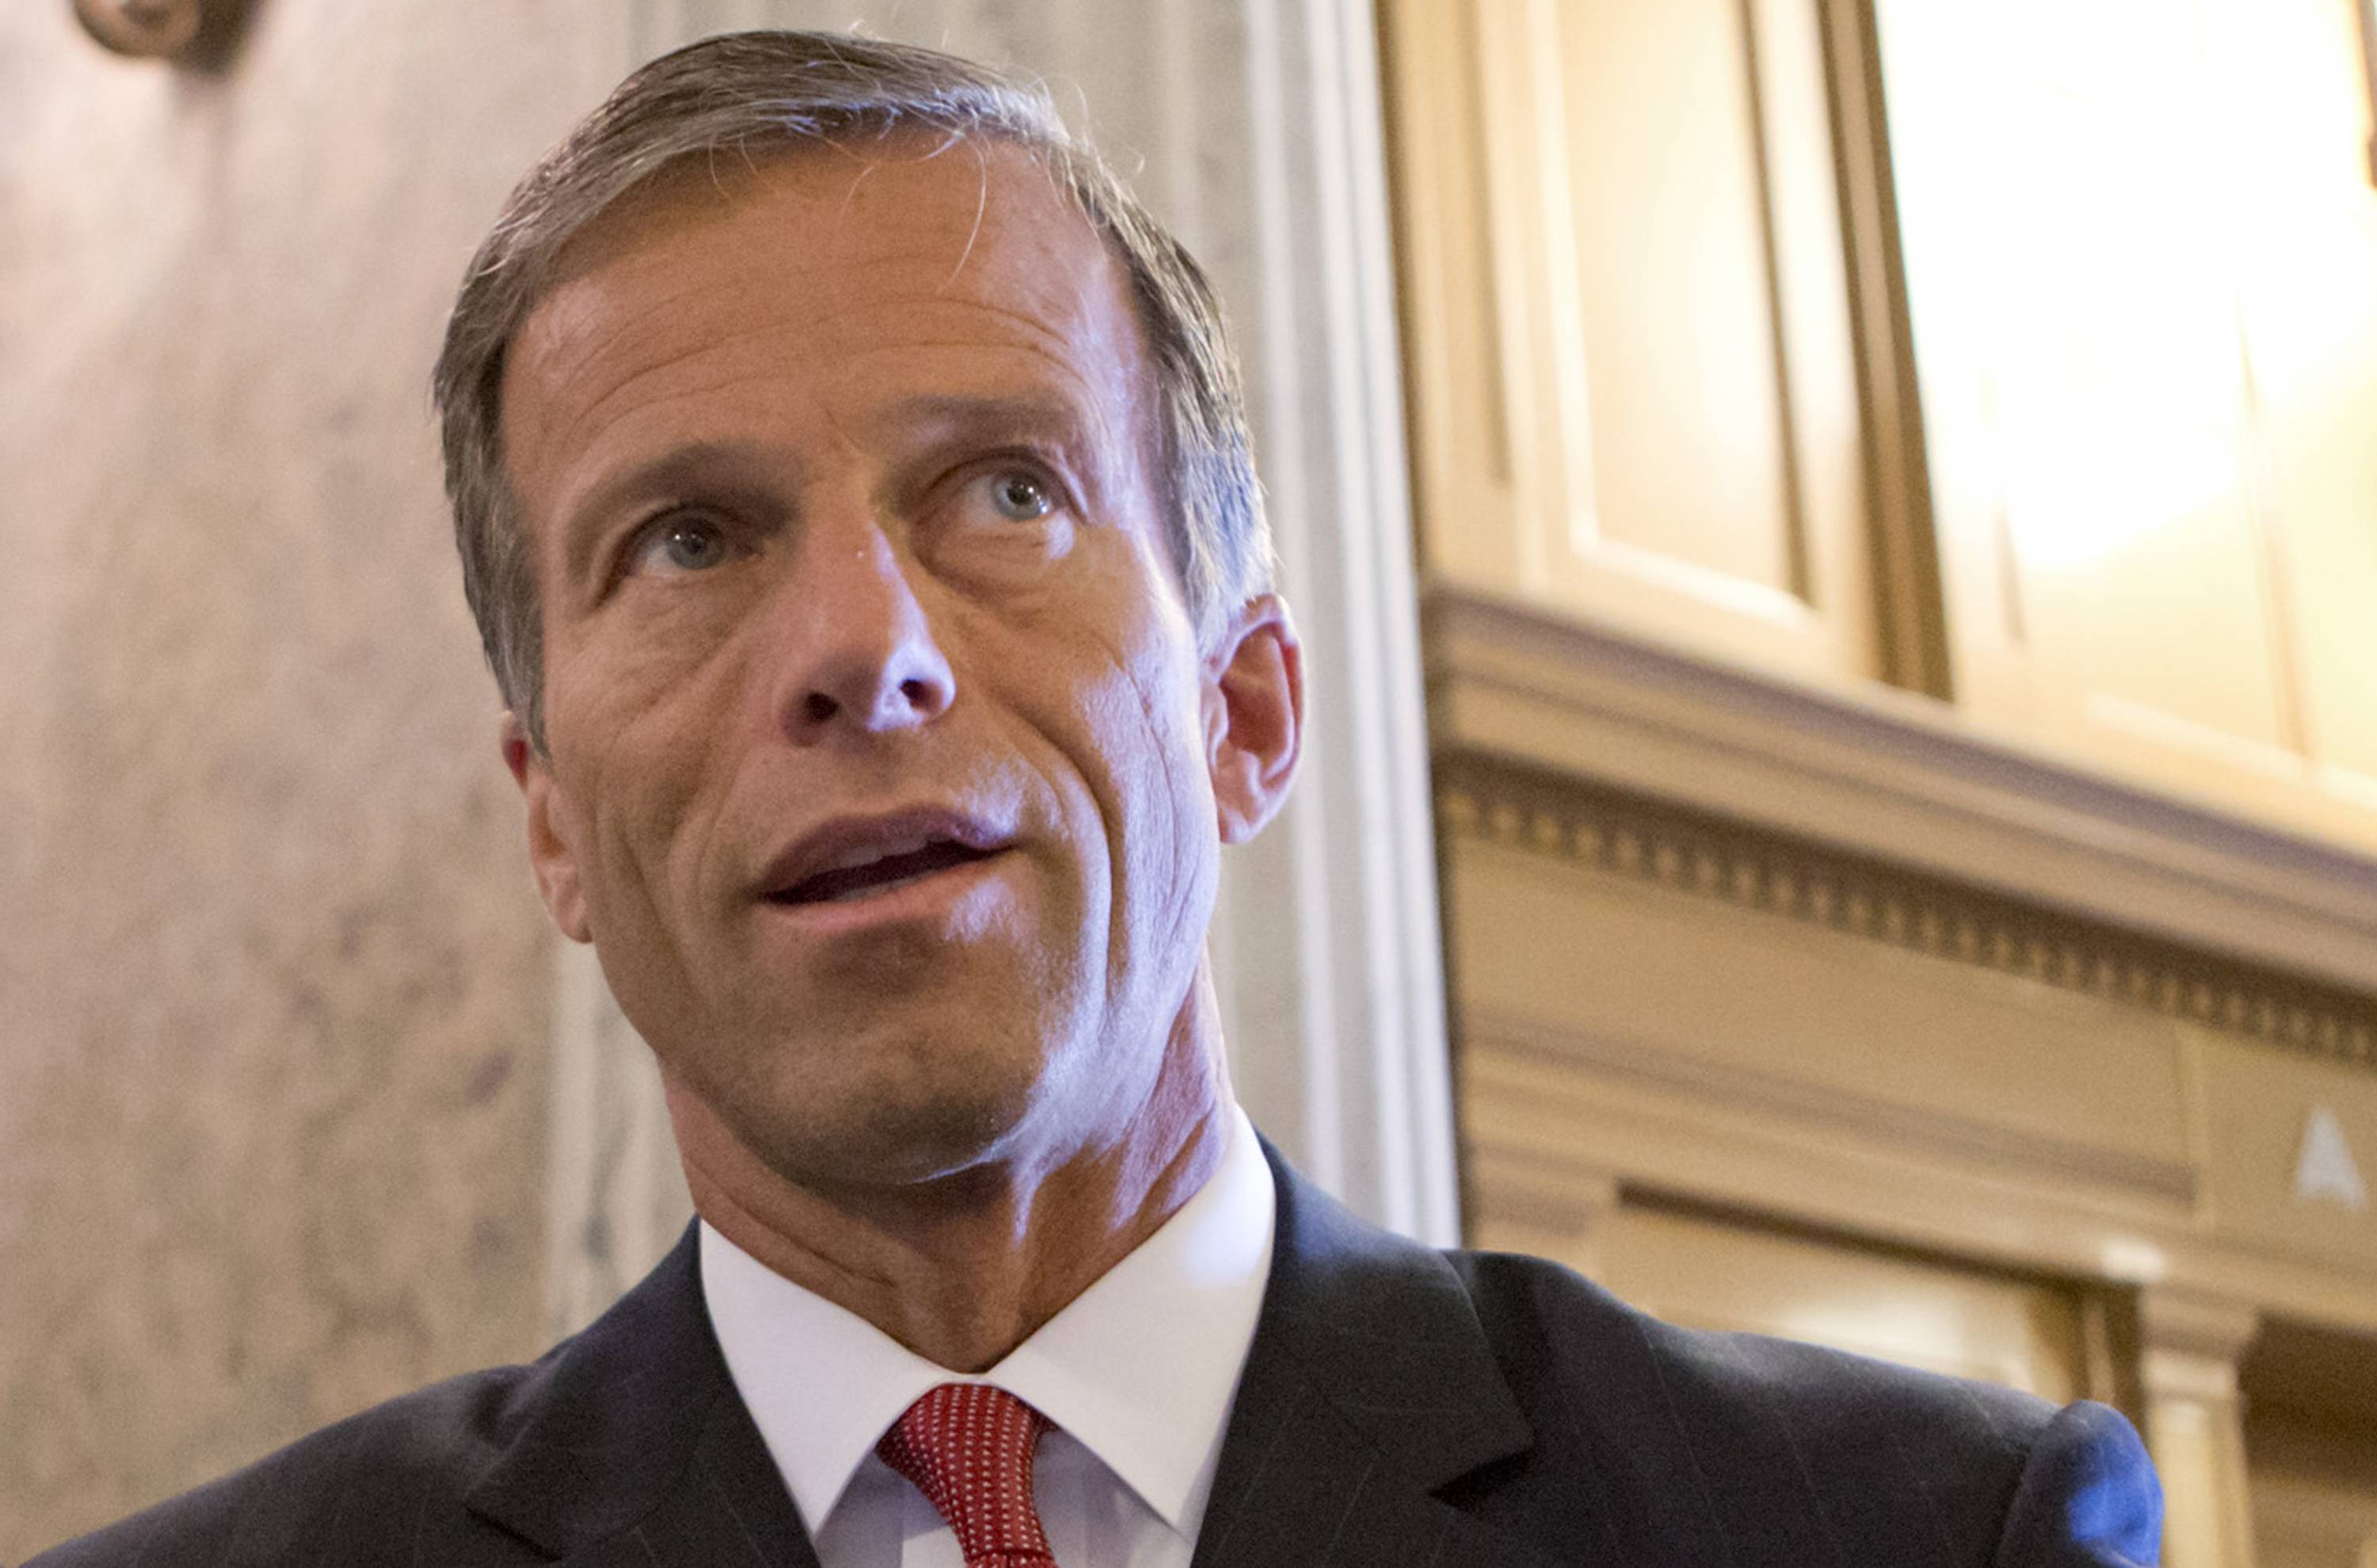 Sen. John Thune, a South Dakota Republican, wants to offer several amendments, including a permanent ban on state and local Internet access taxes. A temporary moratorium on such taxes is due to expire Nov. 1.